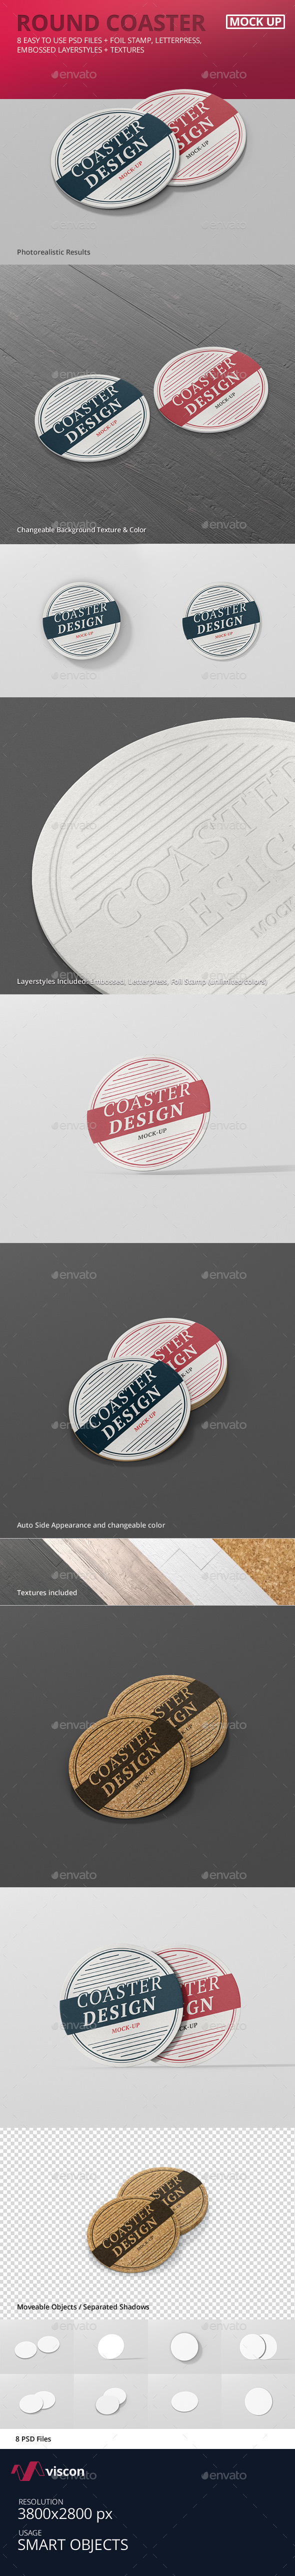 Round Coaster Mock-Up (Stationery)